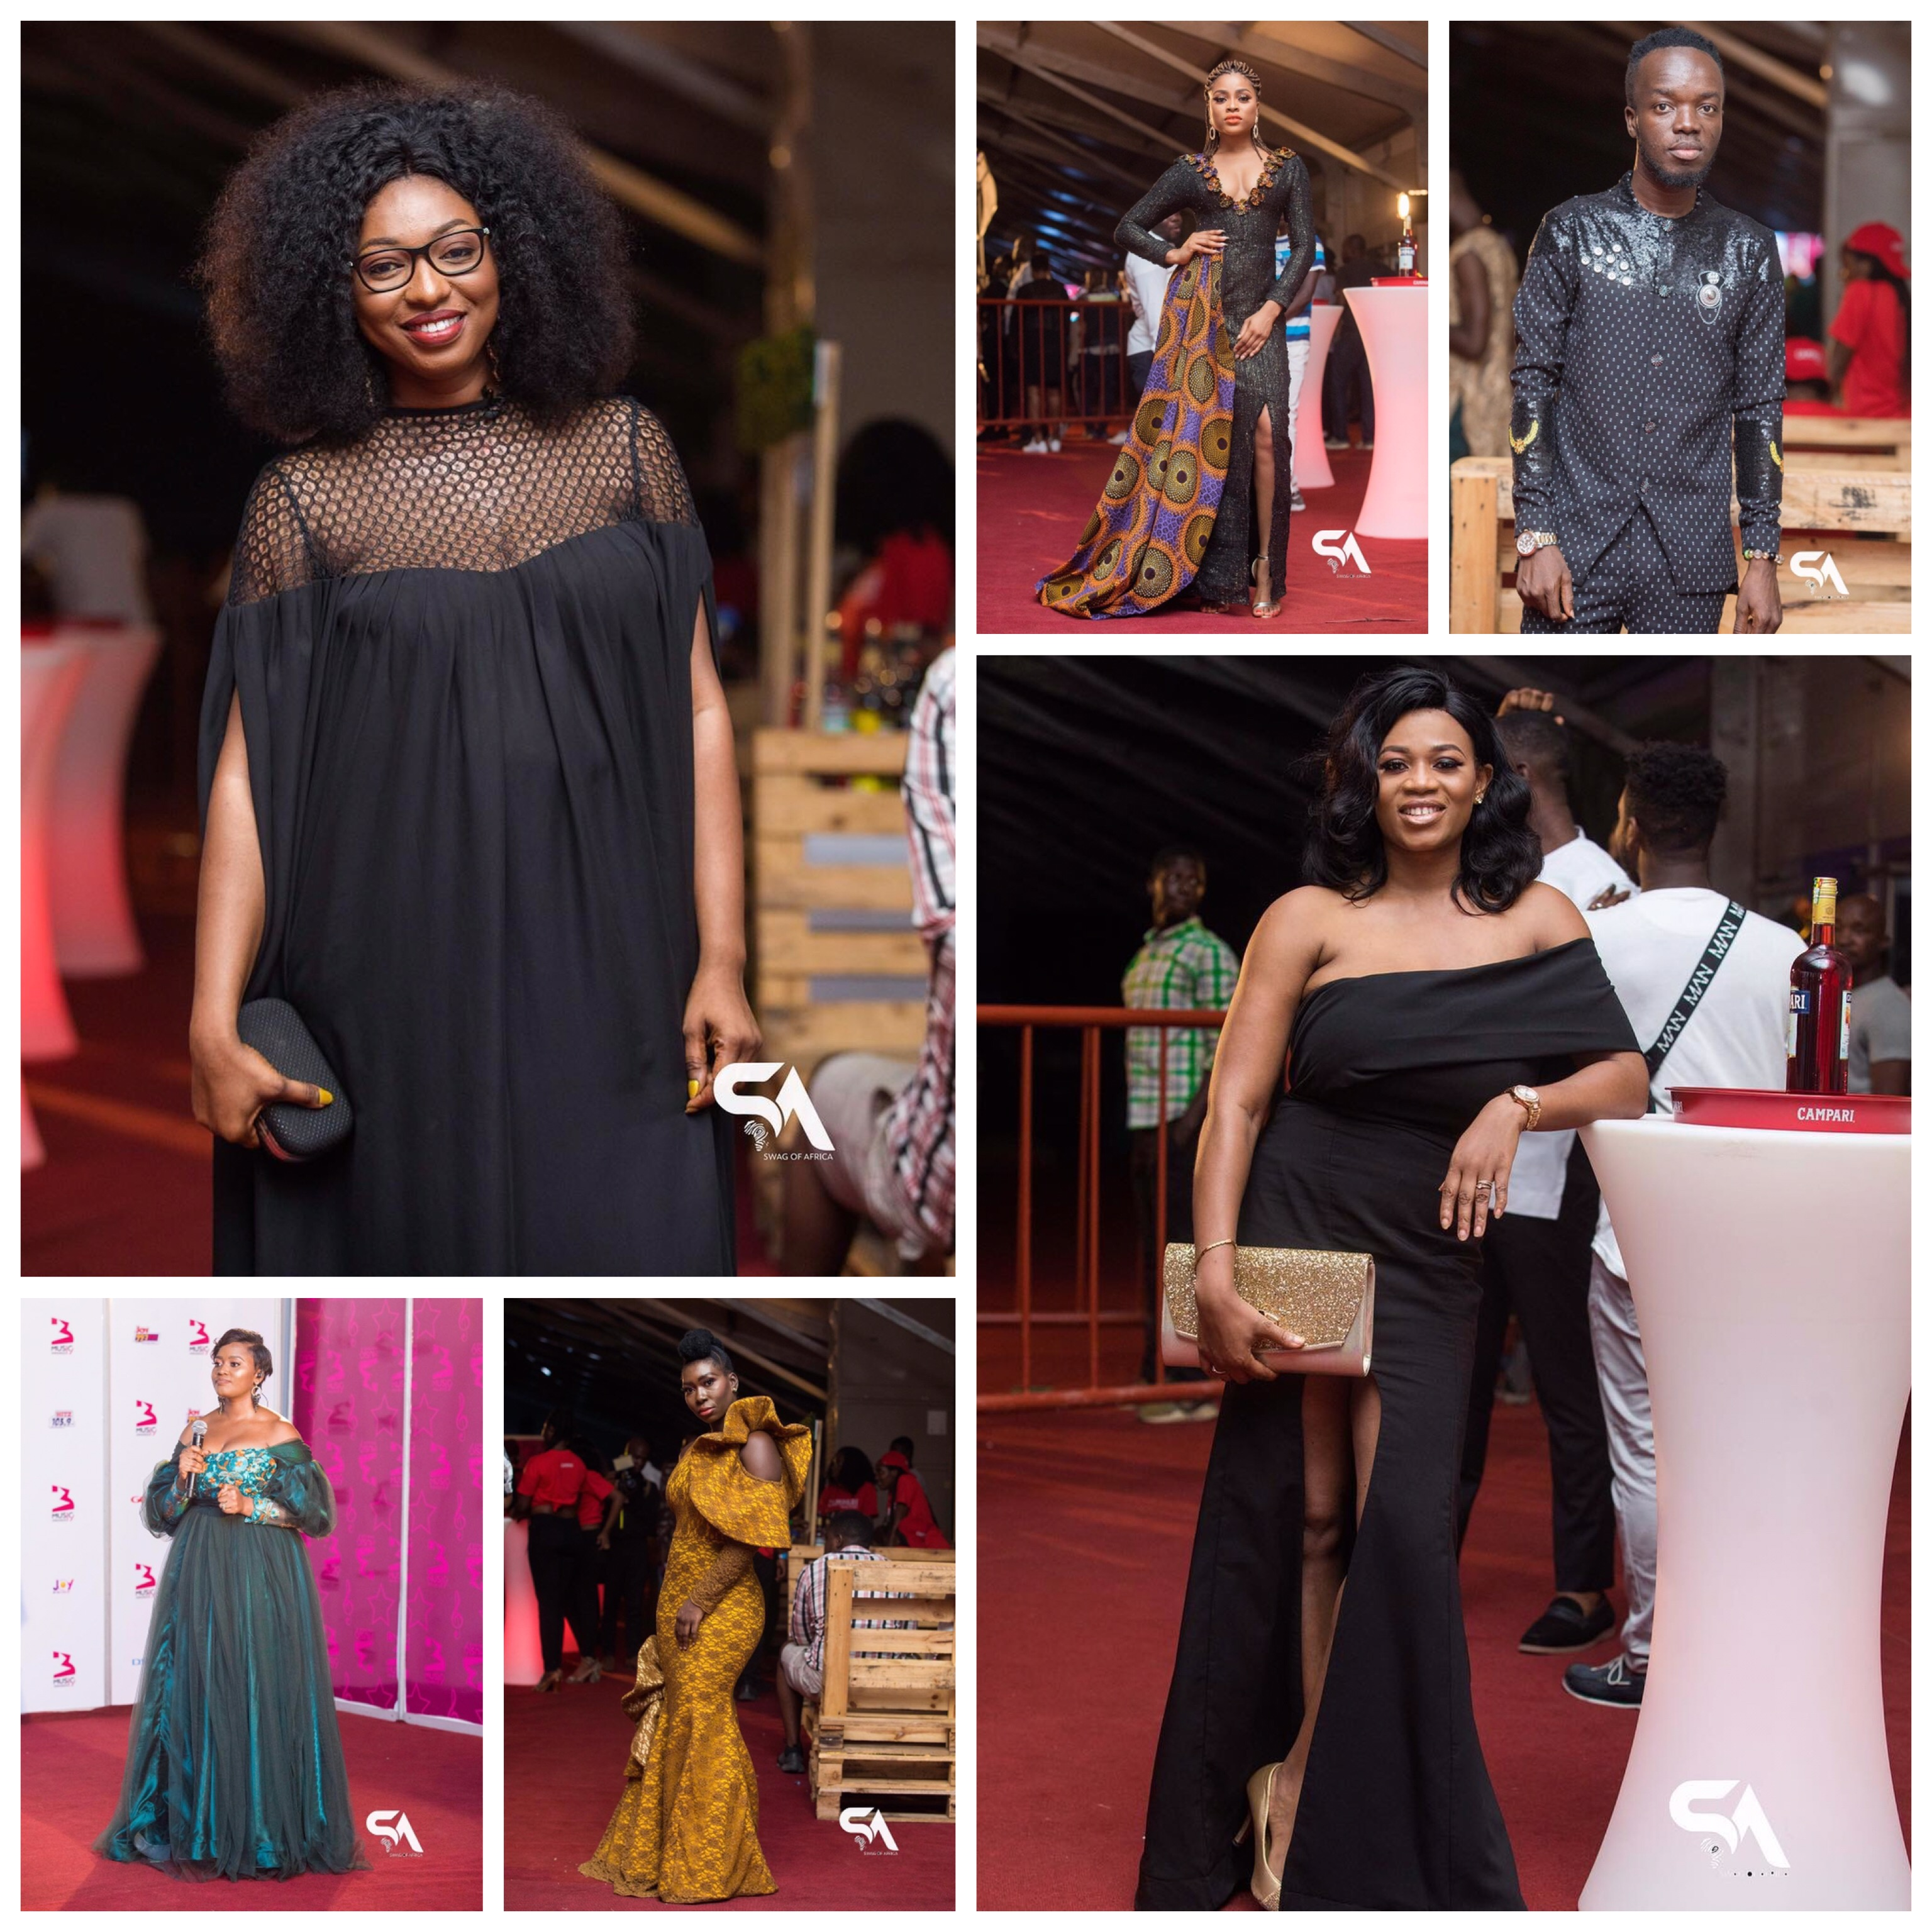 Photos: Hit or Miss, who wore the best dress on the 3 Music Awards red carpet?